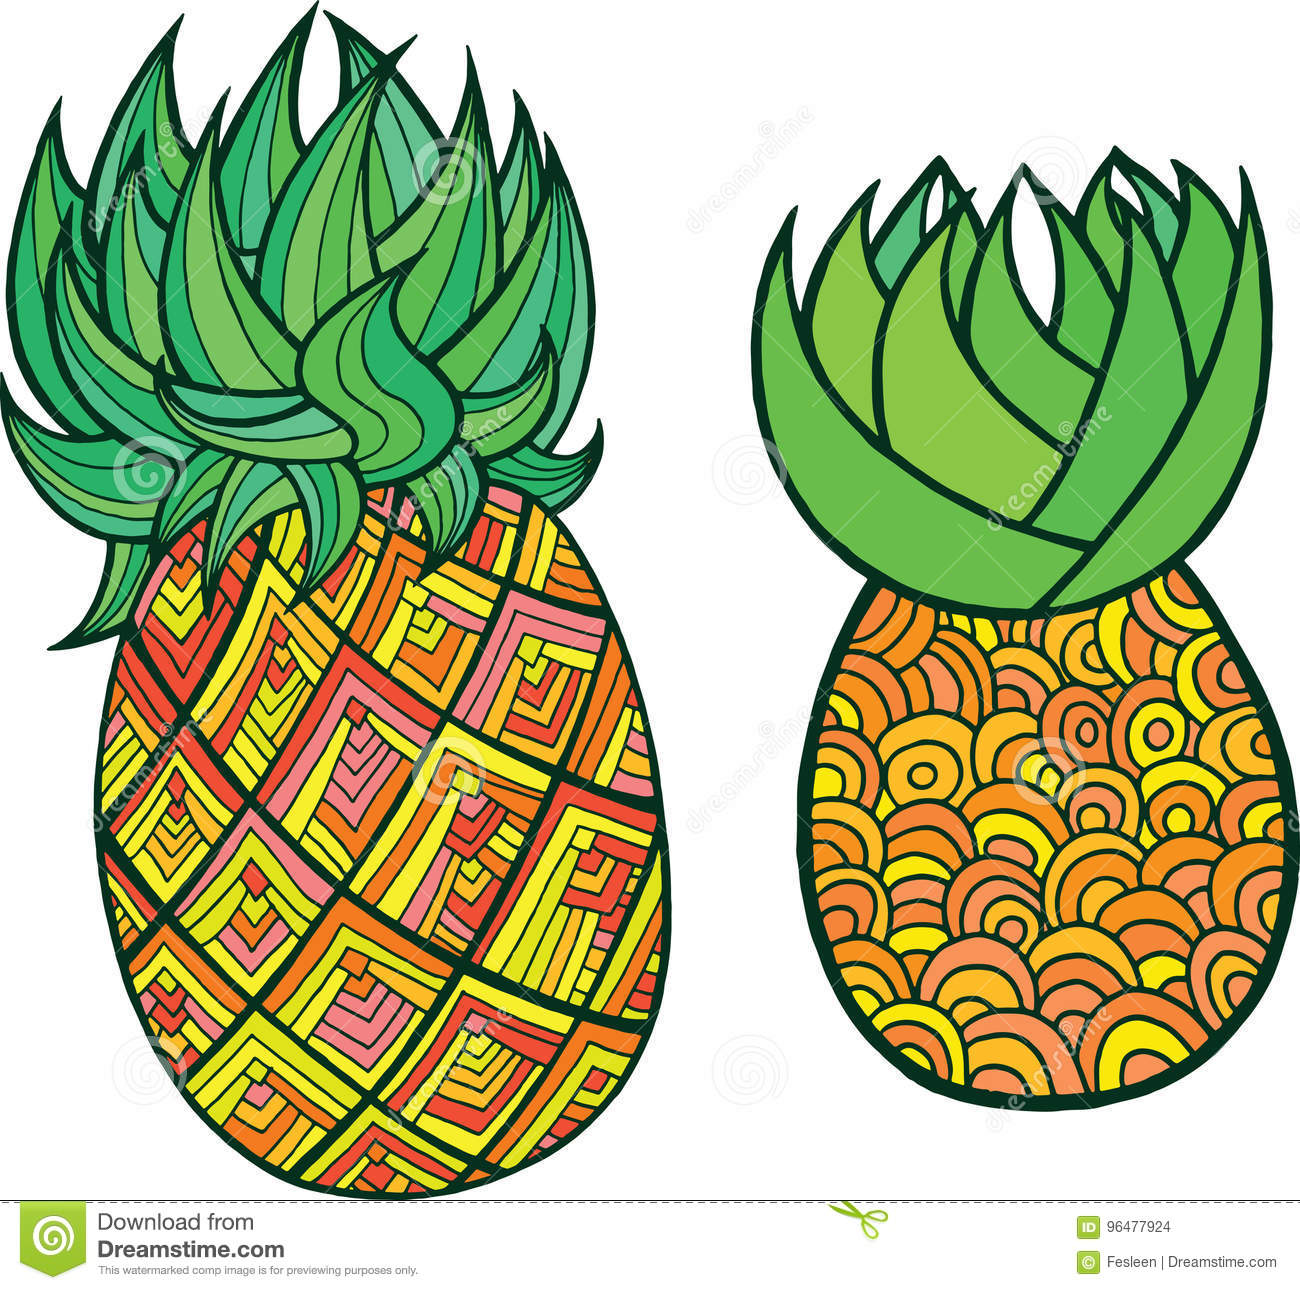 Pineapple Coloring Page. Graphic Vector Colorful Doodle Art For ...